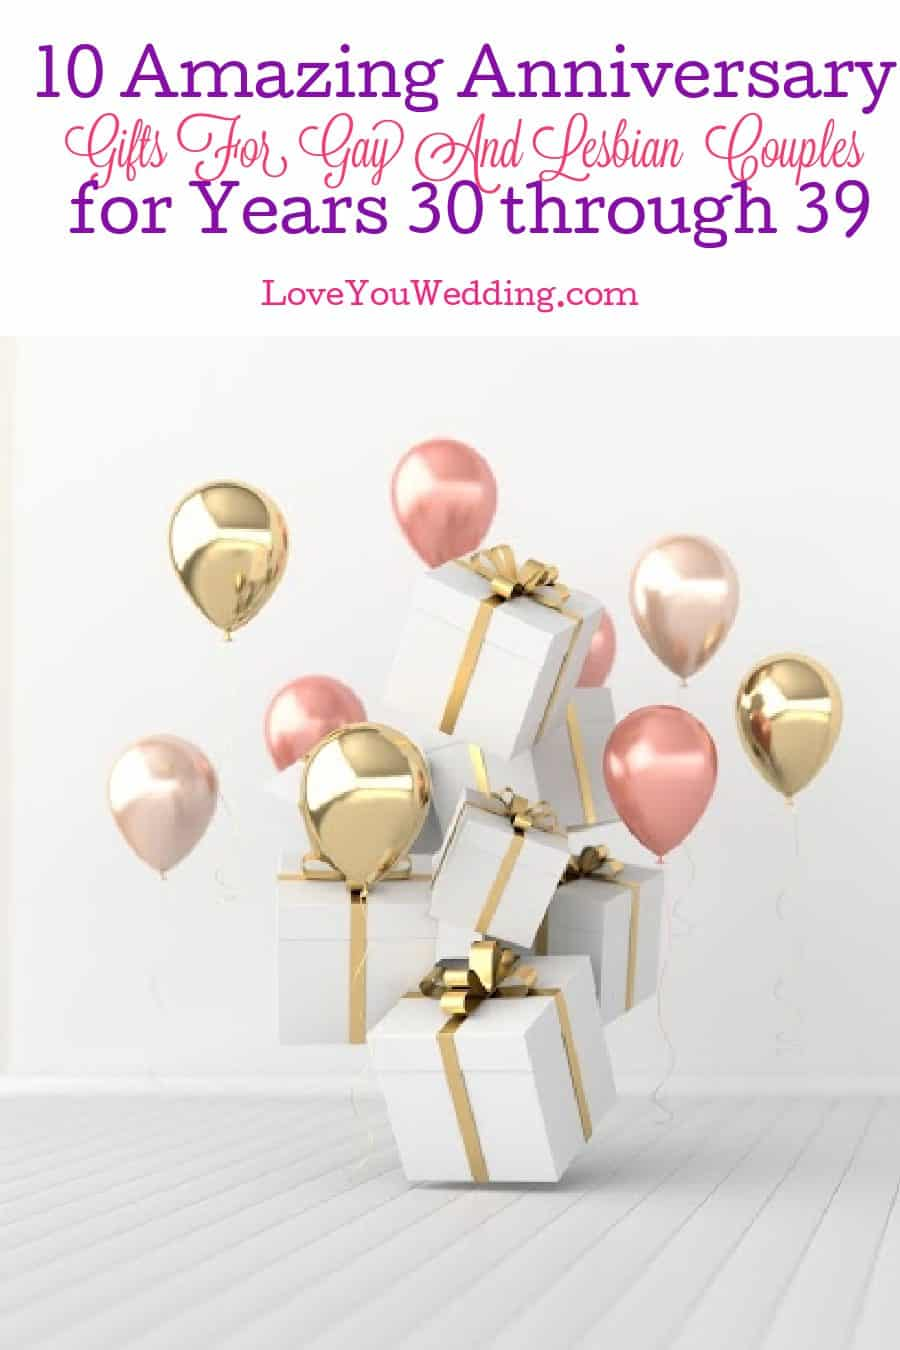 Searching for some beautiful anniversary gifts for gay and lesbian couples for years 30-39? It was tough, but we found 10 perfect options!